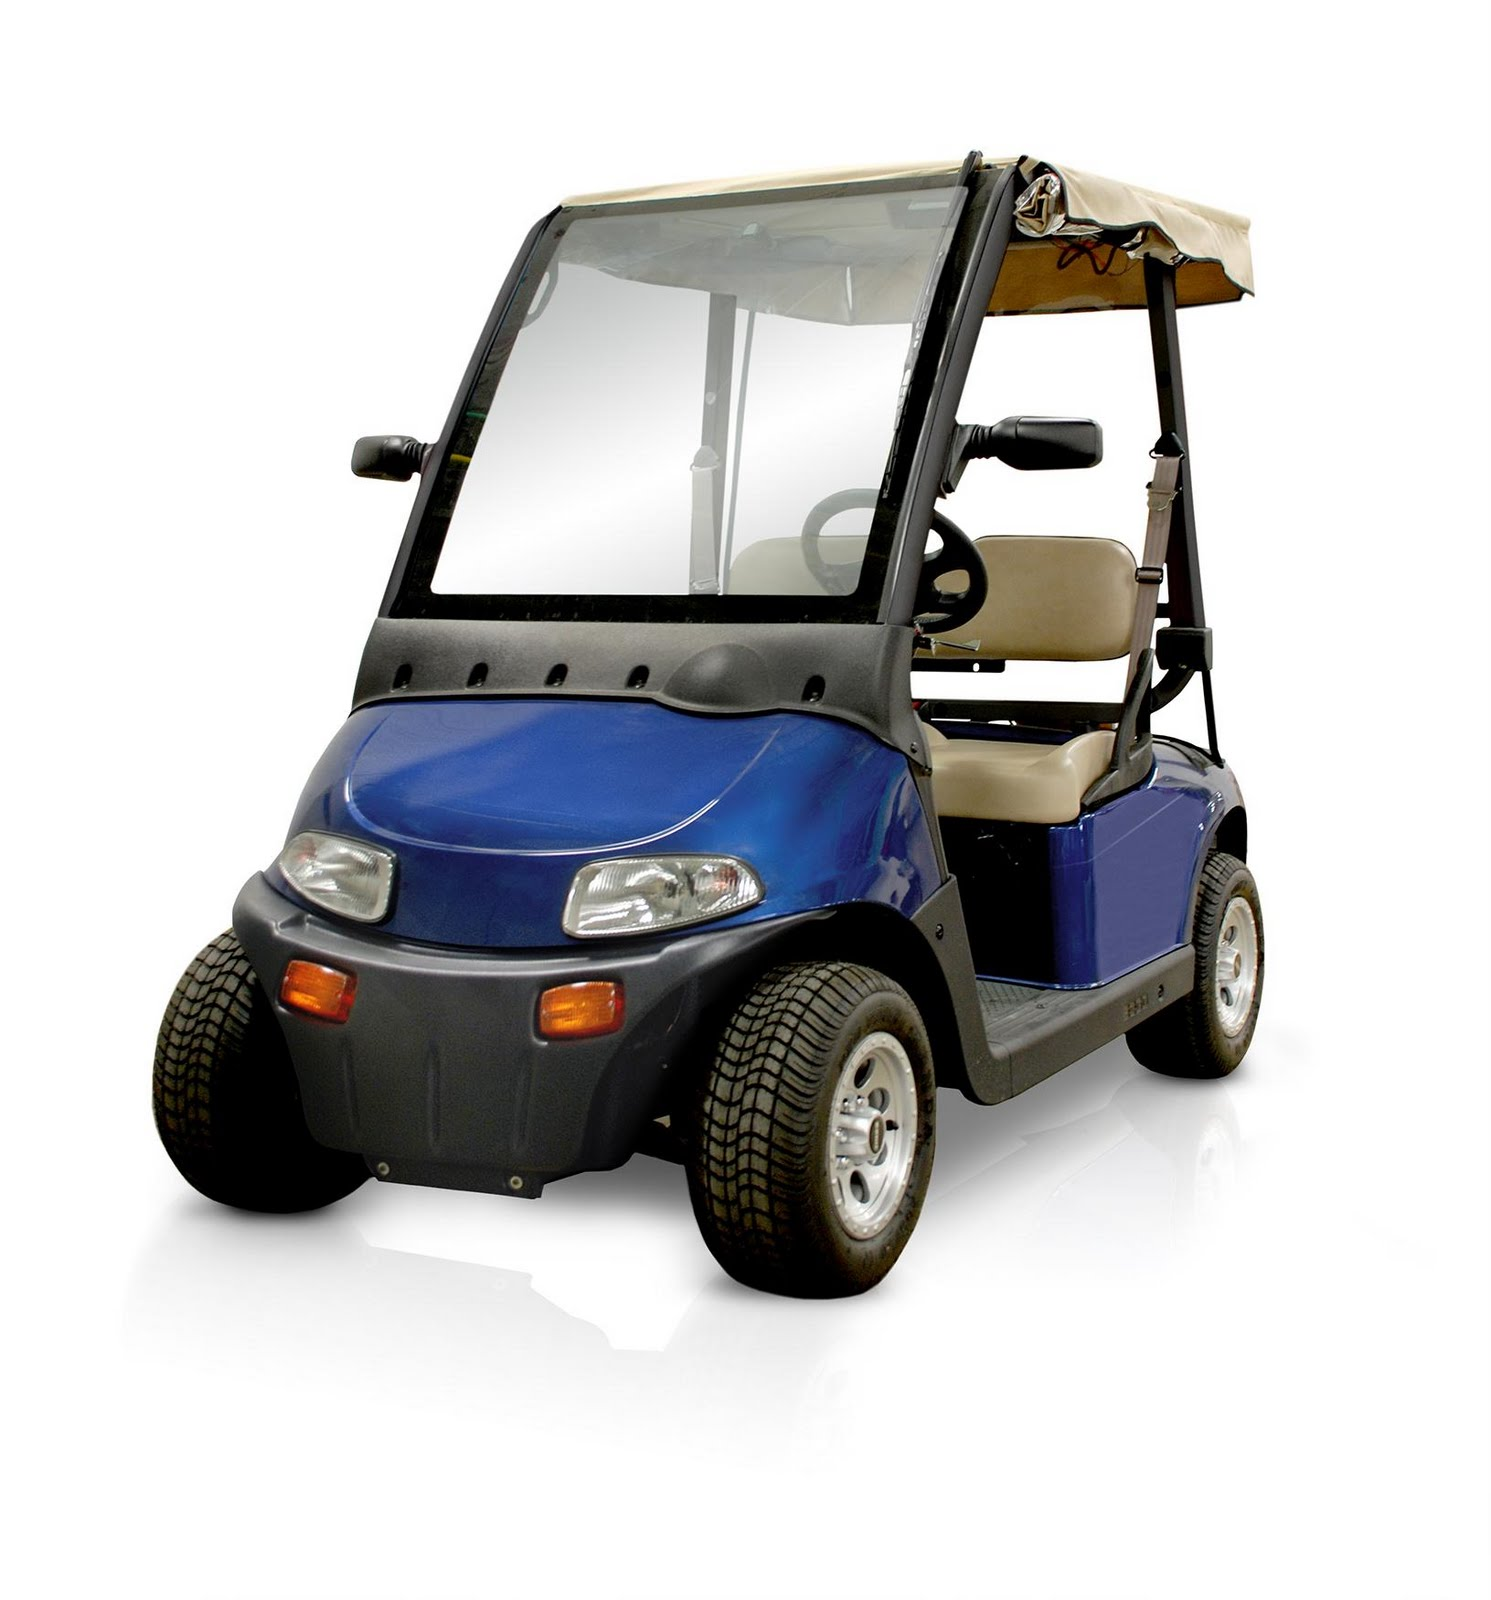 334944757 additionally Watch moreover 2041 as well ments besides Fairway Classic Yamaha G 5 Sun Classic The Brougham Golf Cart. on yamaha sun classic golf cart